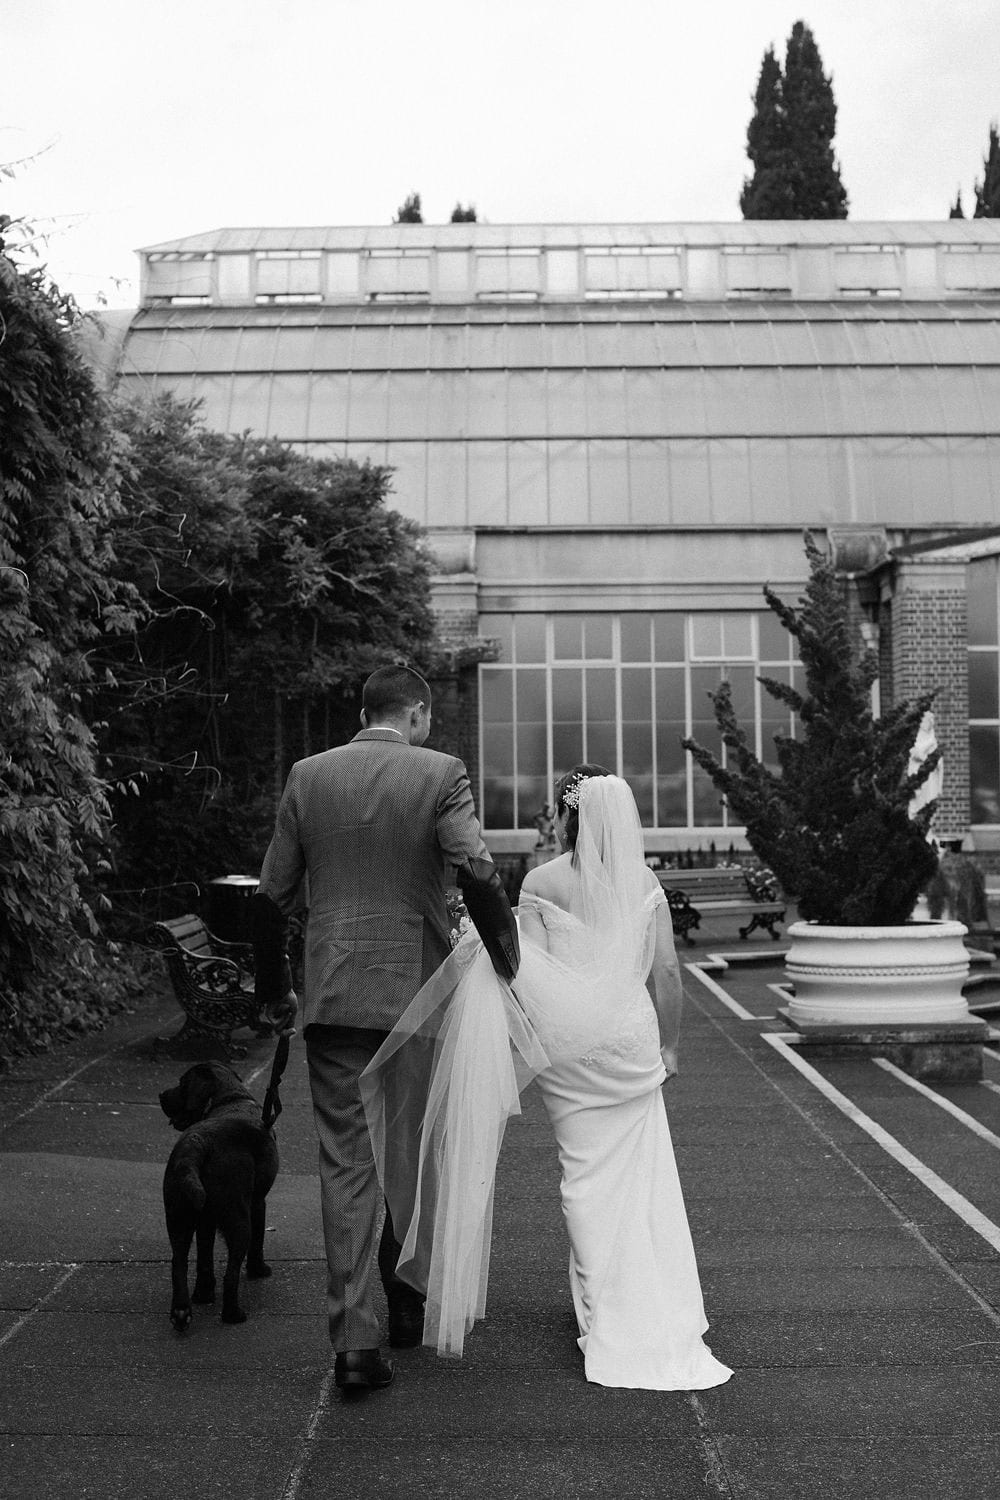 Vinka Design Features Real Weddings - bride wearing custom made lace wedding gown. Bride, groom and dog